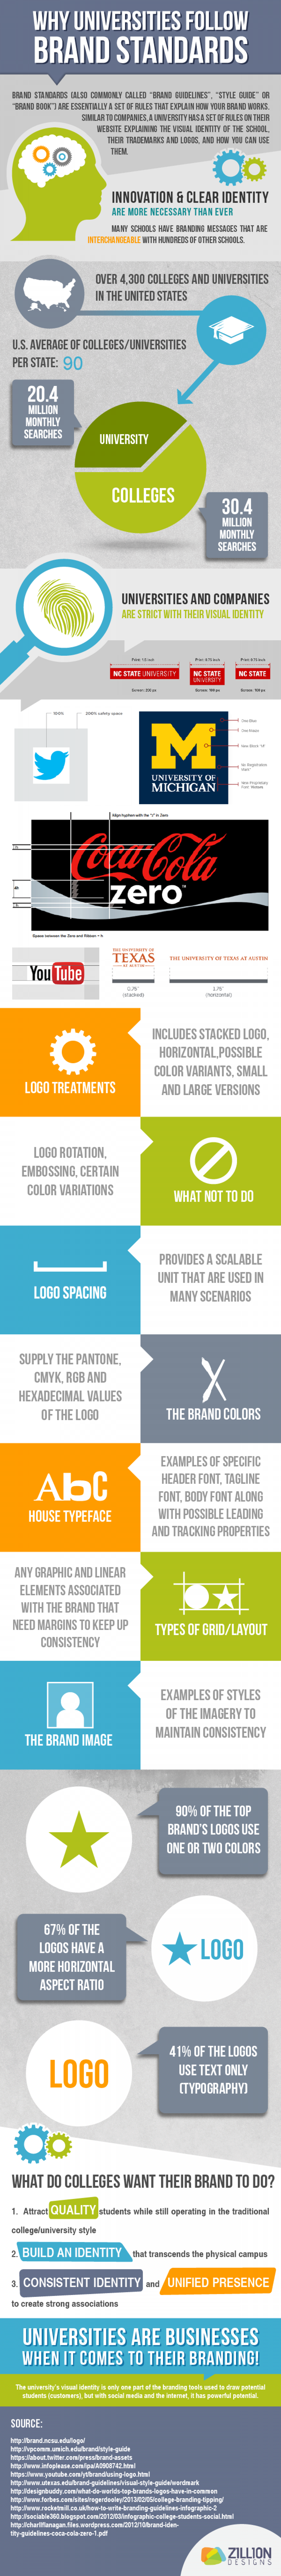 Why Universities Follow Brand Standards Infographic